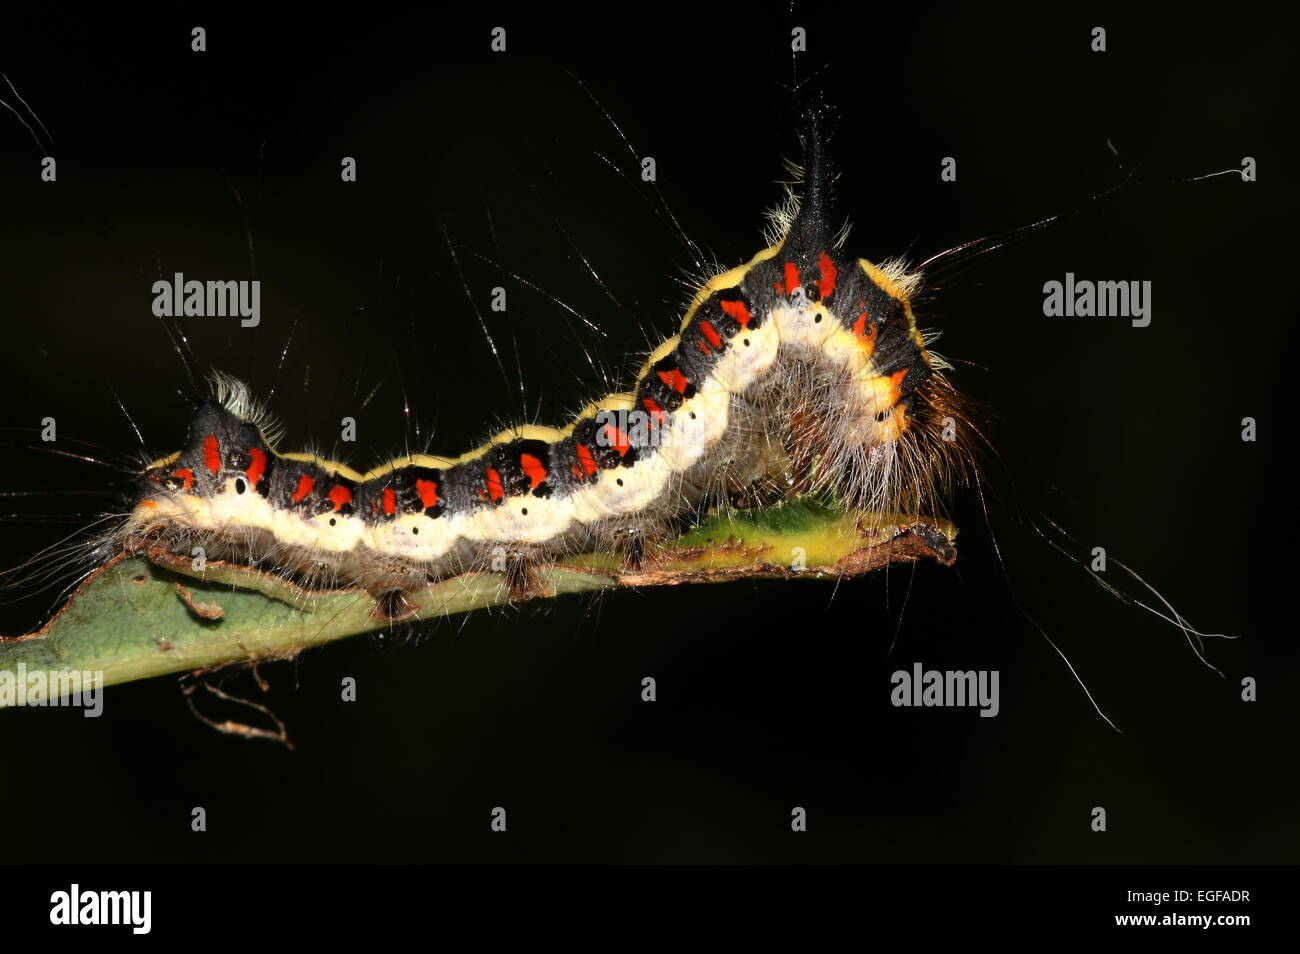 Colourful caterpillar of the European Grey Dagger moth (Acronicta psi) against a black background - Stock Image